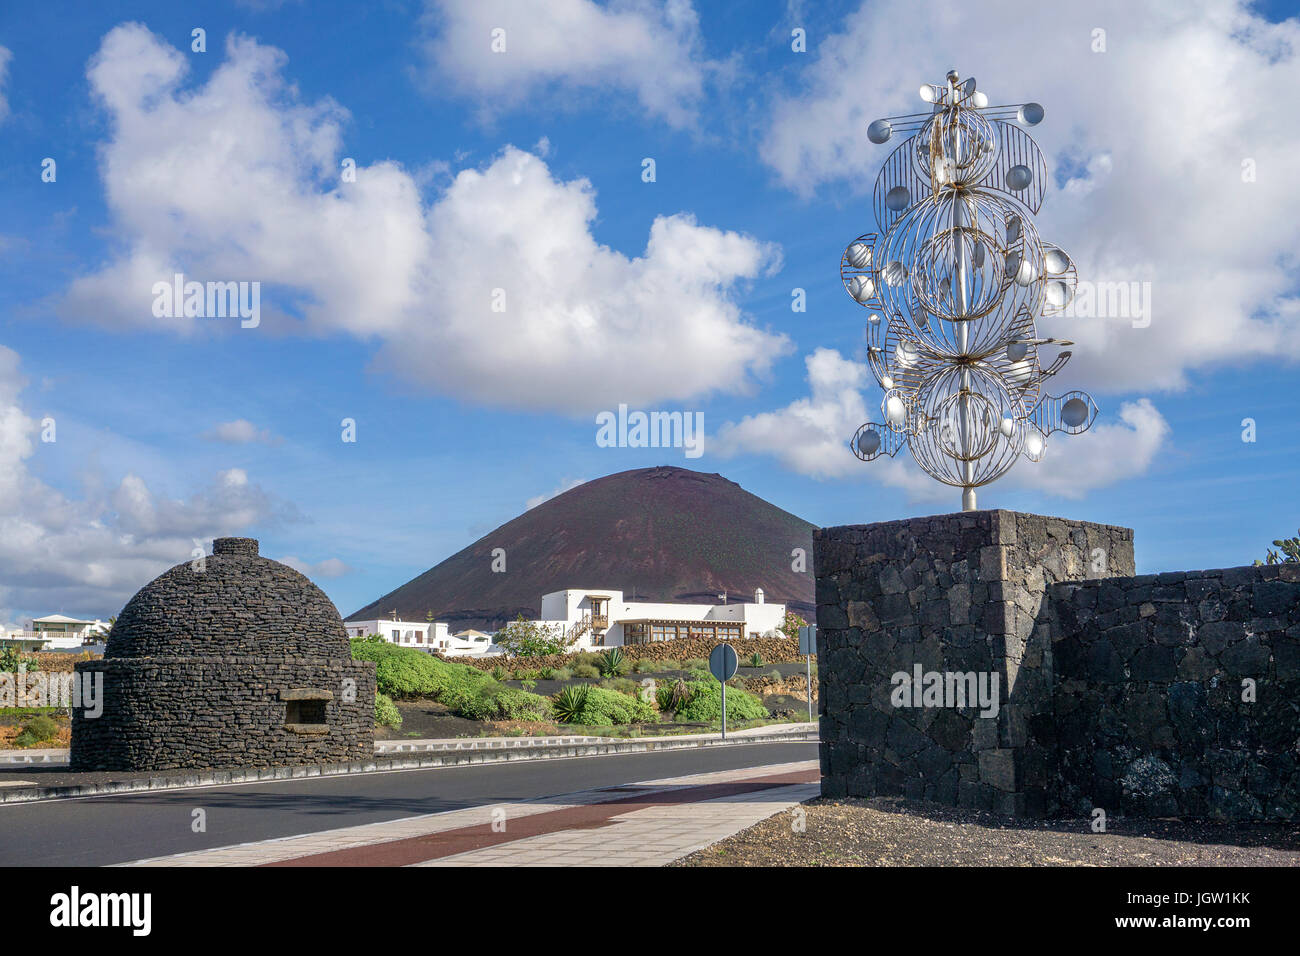 Silver wind chime, sculpture at a crossroad, exit to Fundacion Cesar Manrique, Tahiche, Lanzarote island, Canary - Stock Image